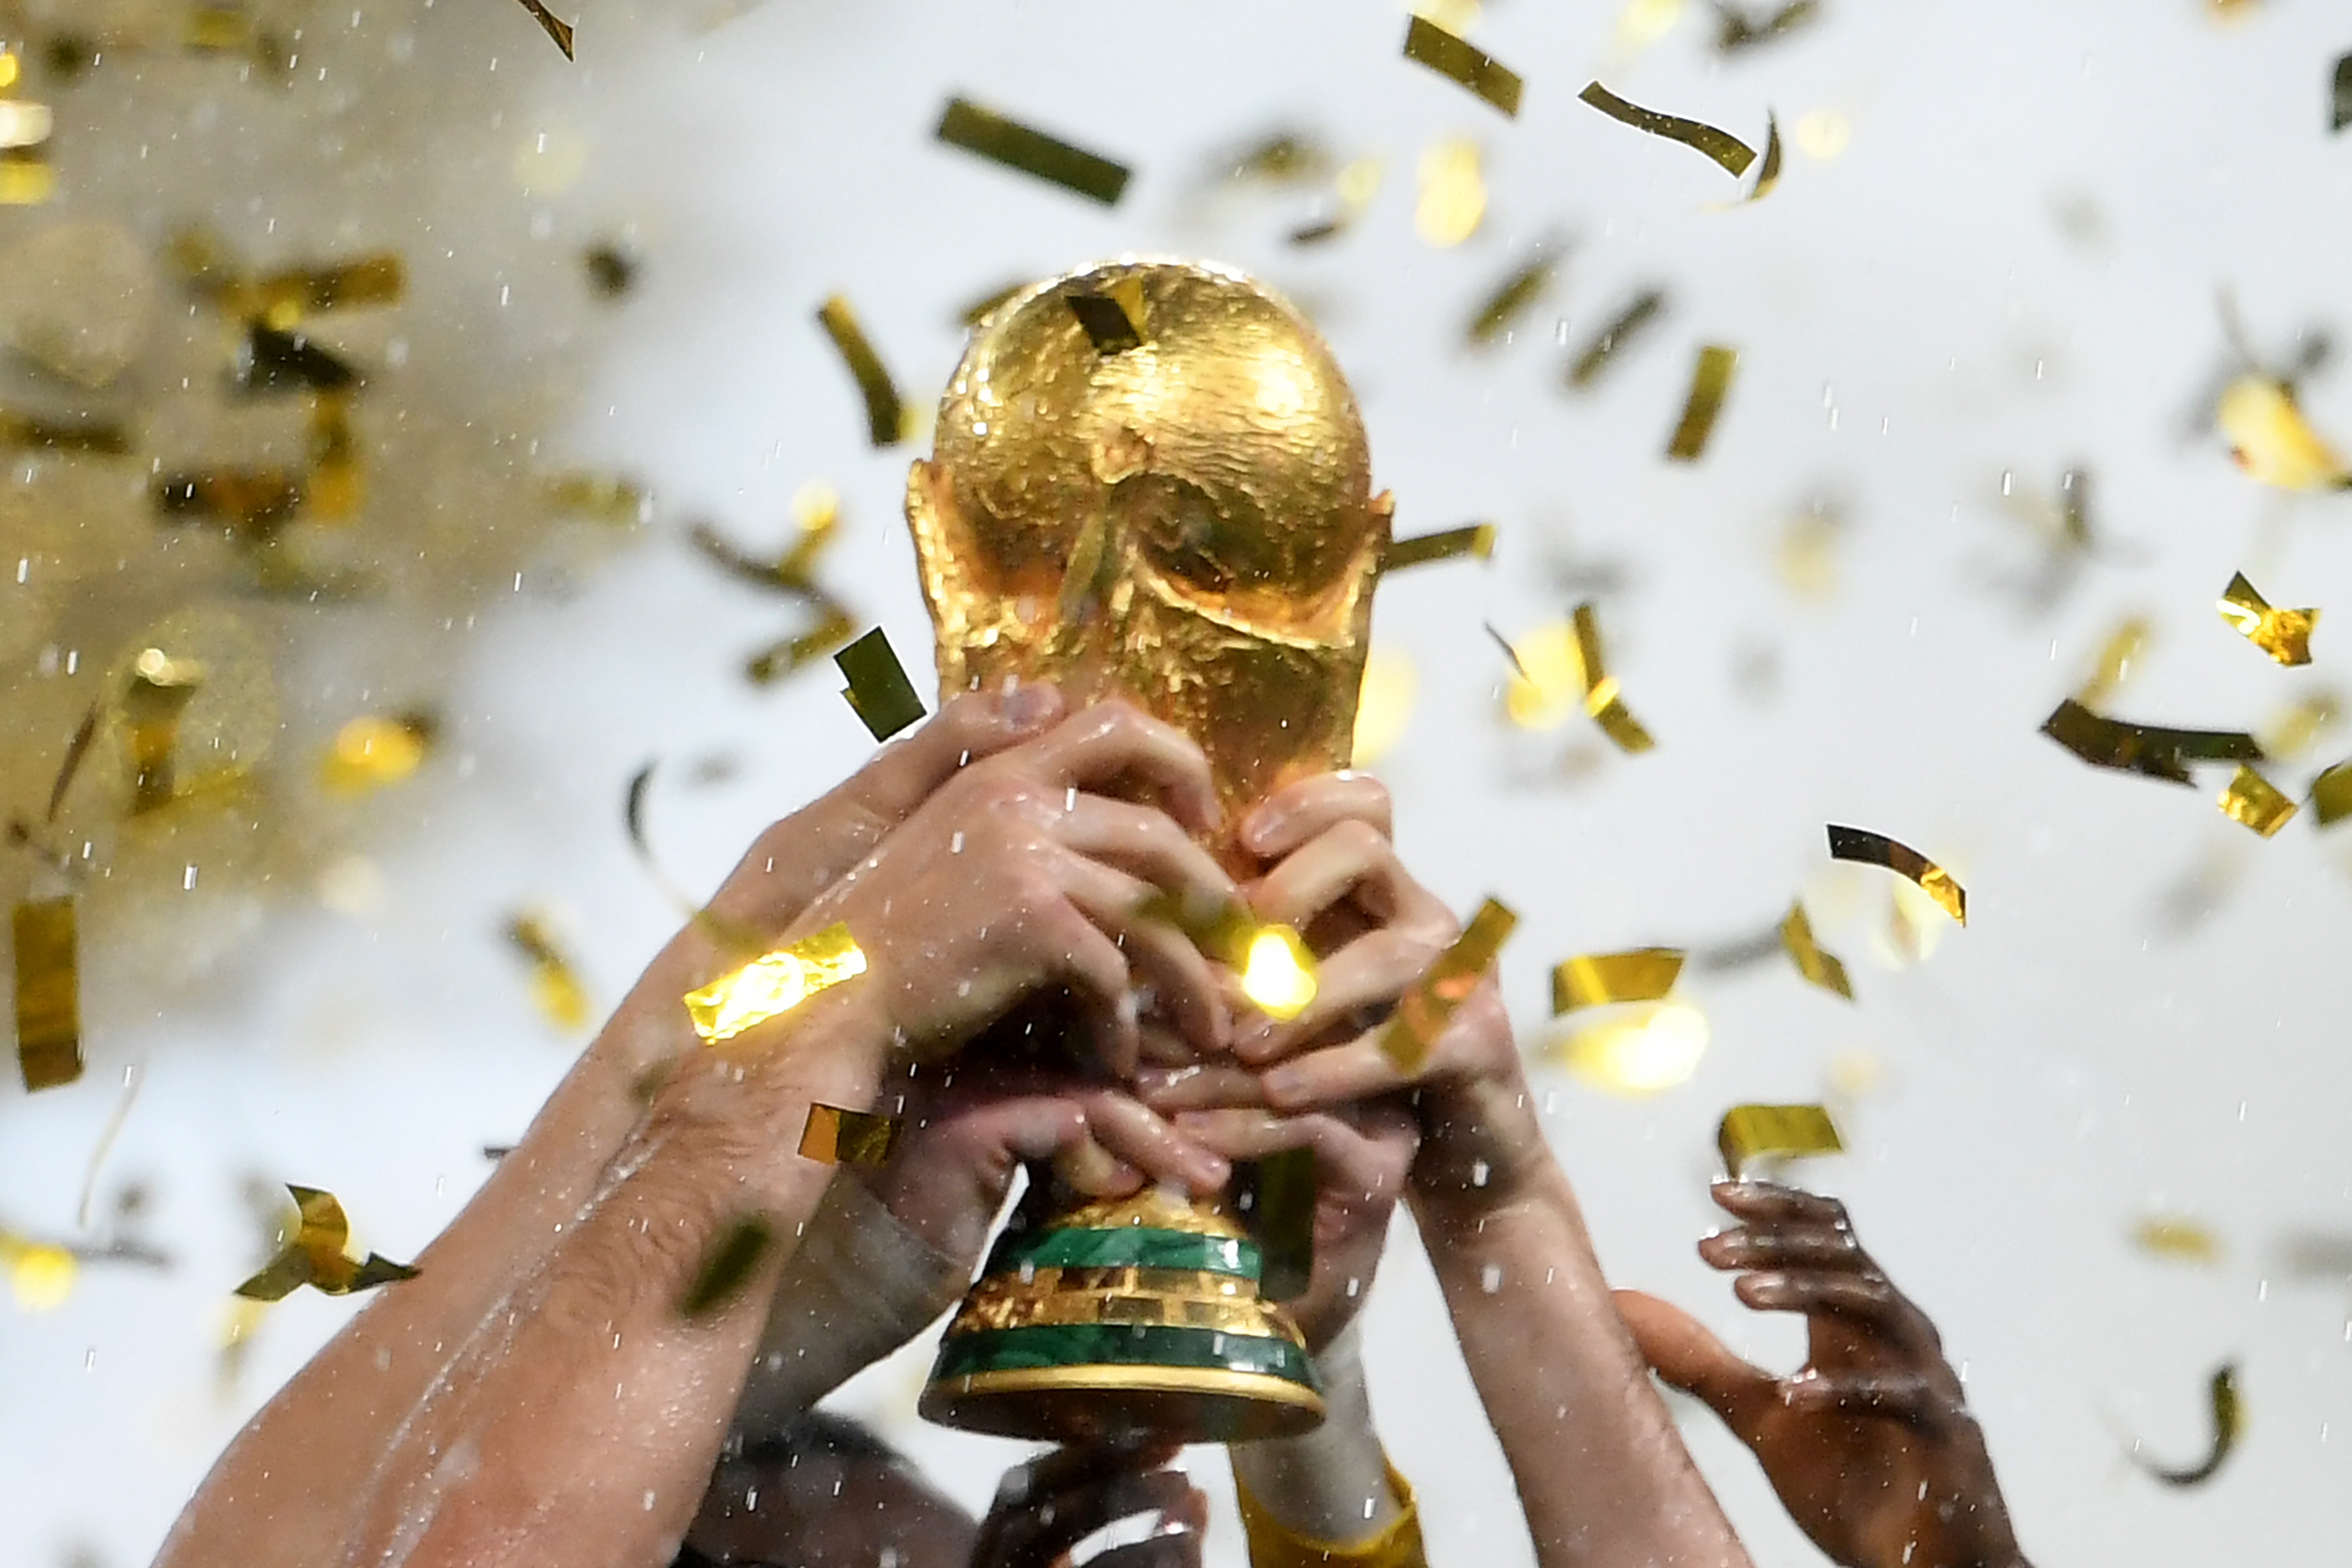 FIFA says players could be banned from competing in the World Cup.